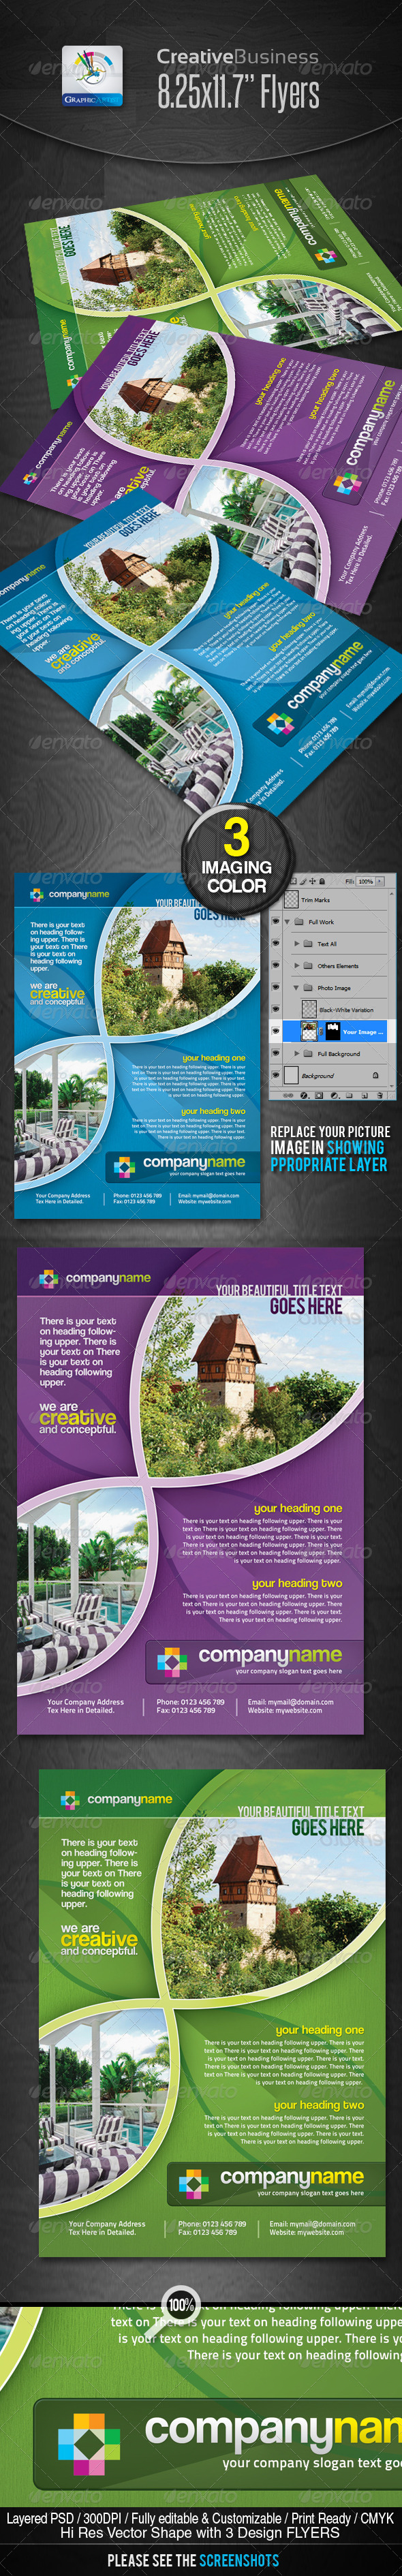 GraphicRiver Creative Corporate Business Flyers Ads 2360568